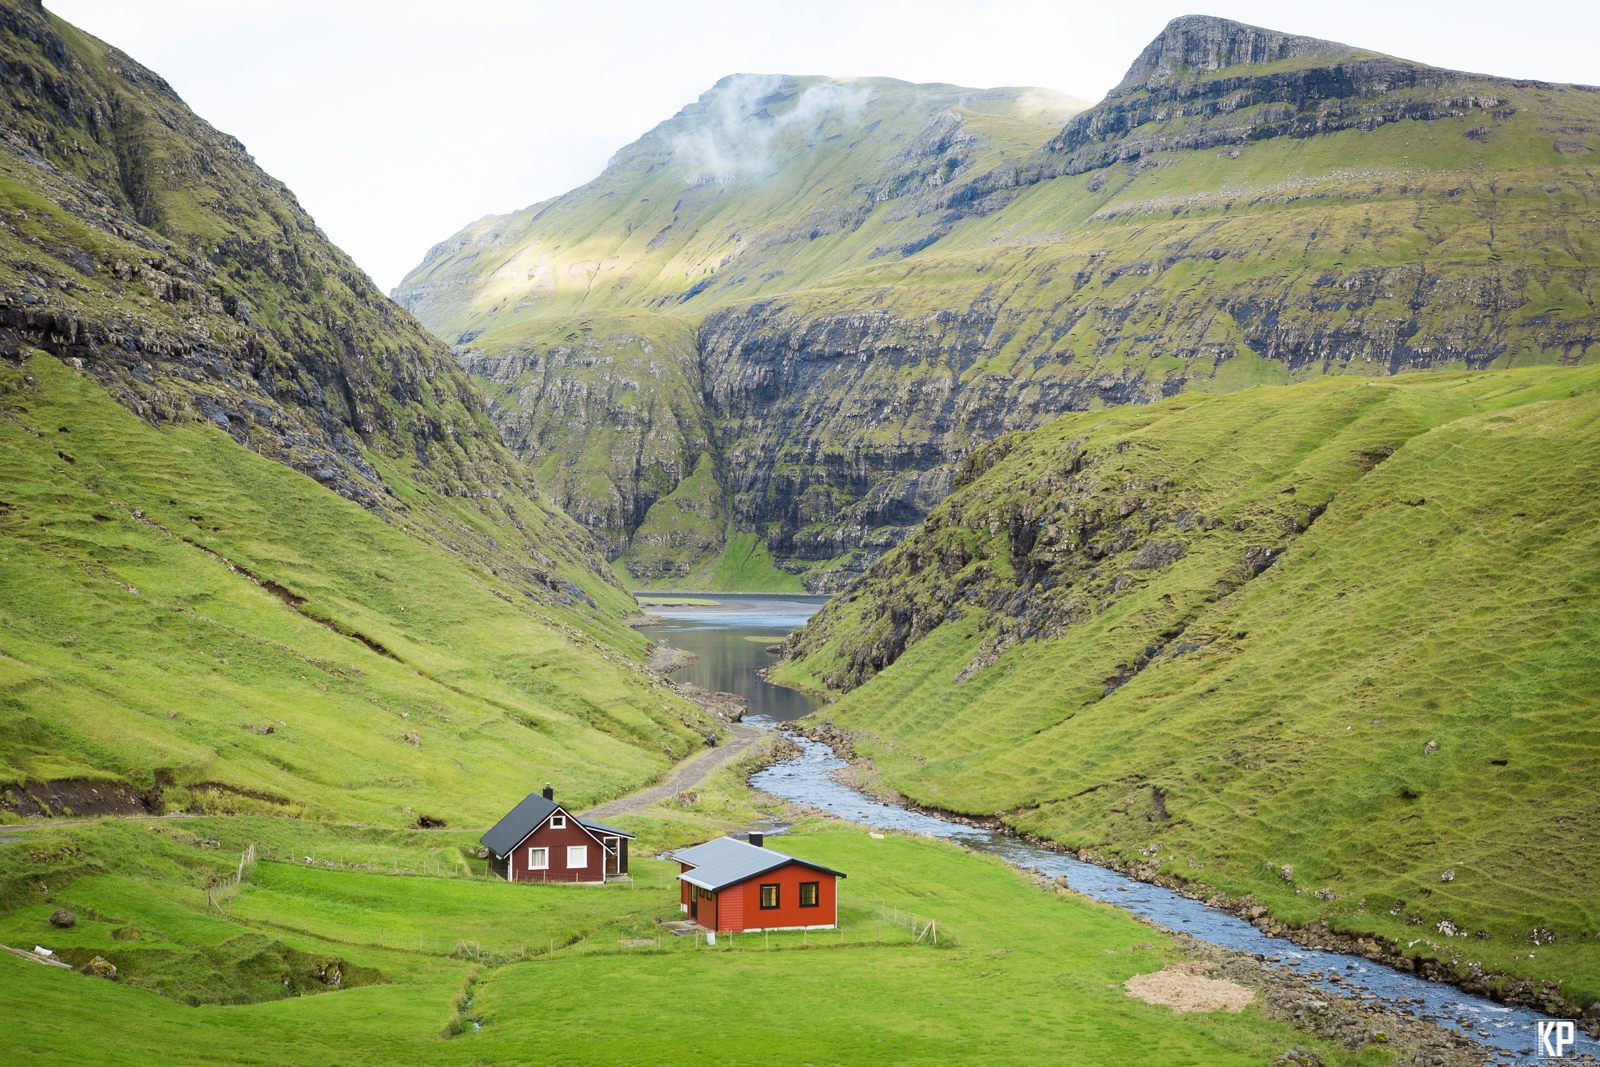 Faroese_homes_in_a_valley